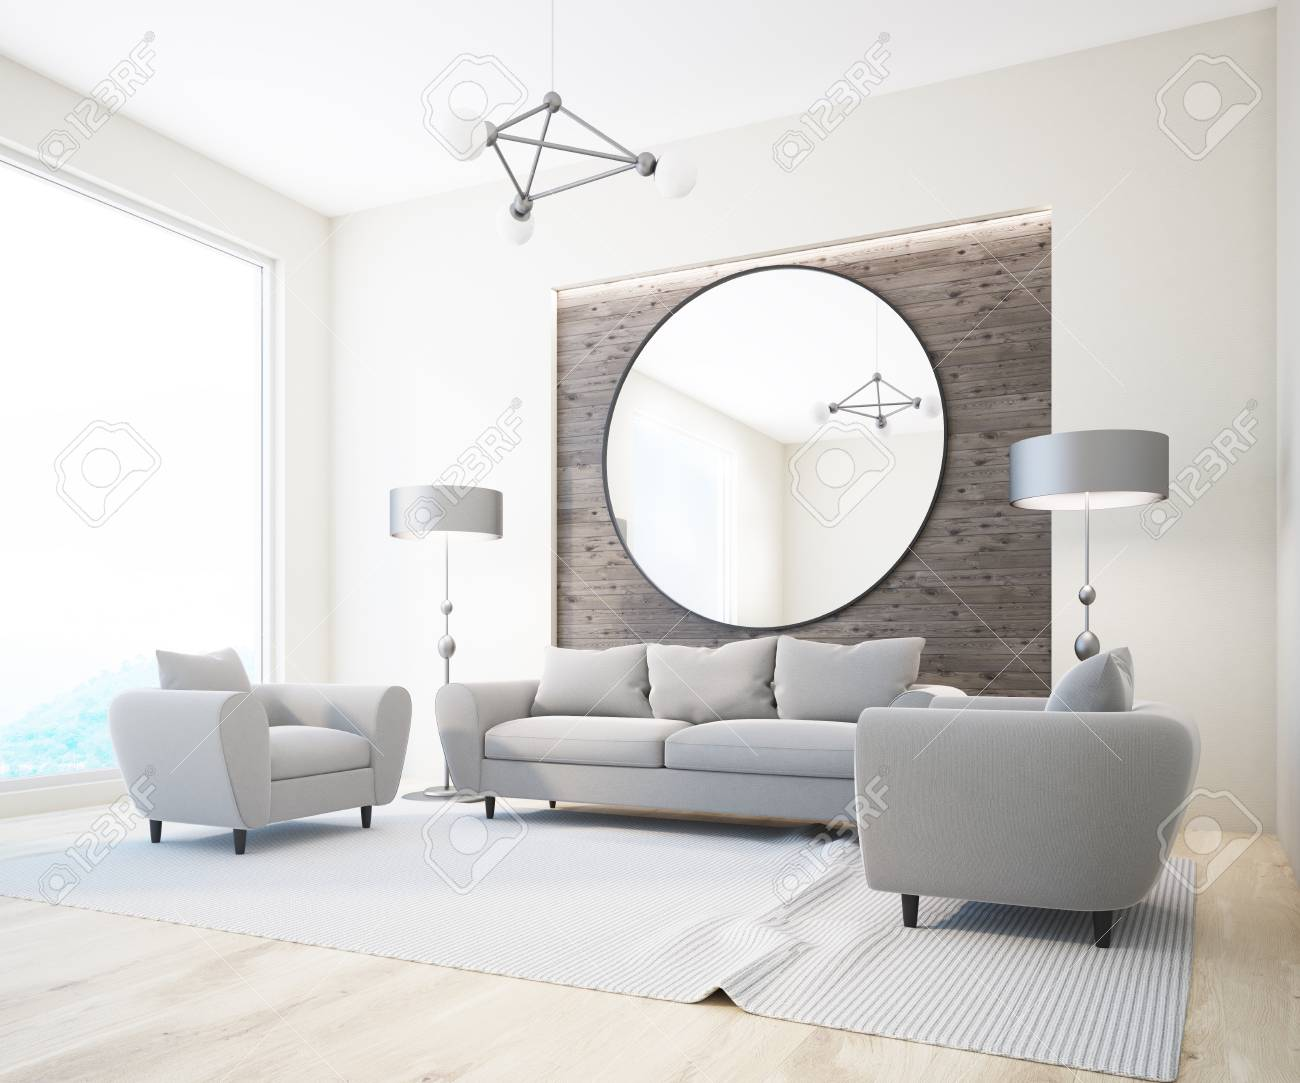 Luxury Gray Sofas And Armchairs Standing In A Scandinavian Style